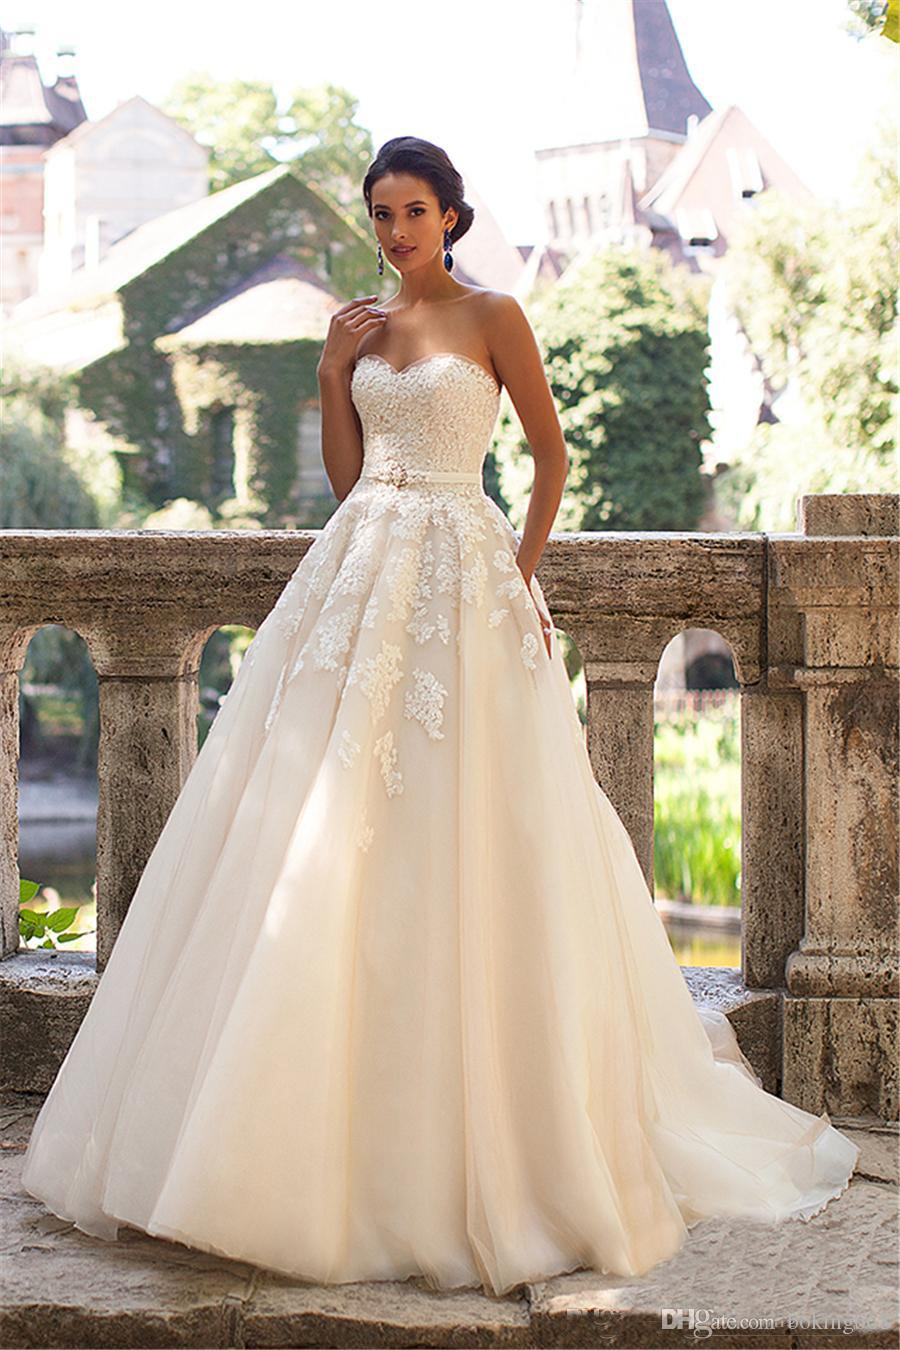 a5ee4ac3e10 Discount Strapless Champagne Wedding Gown Dress 2019 Crystals Castle Lace  Applique Wedding Dresses A Line Lace Up Wedding Dress Vestidos De Novia  Bride ...